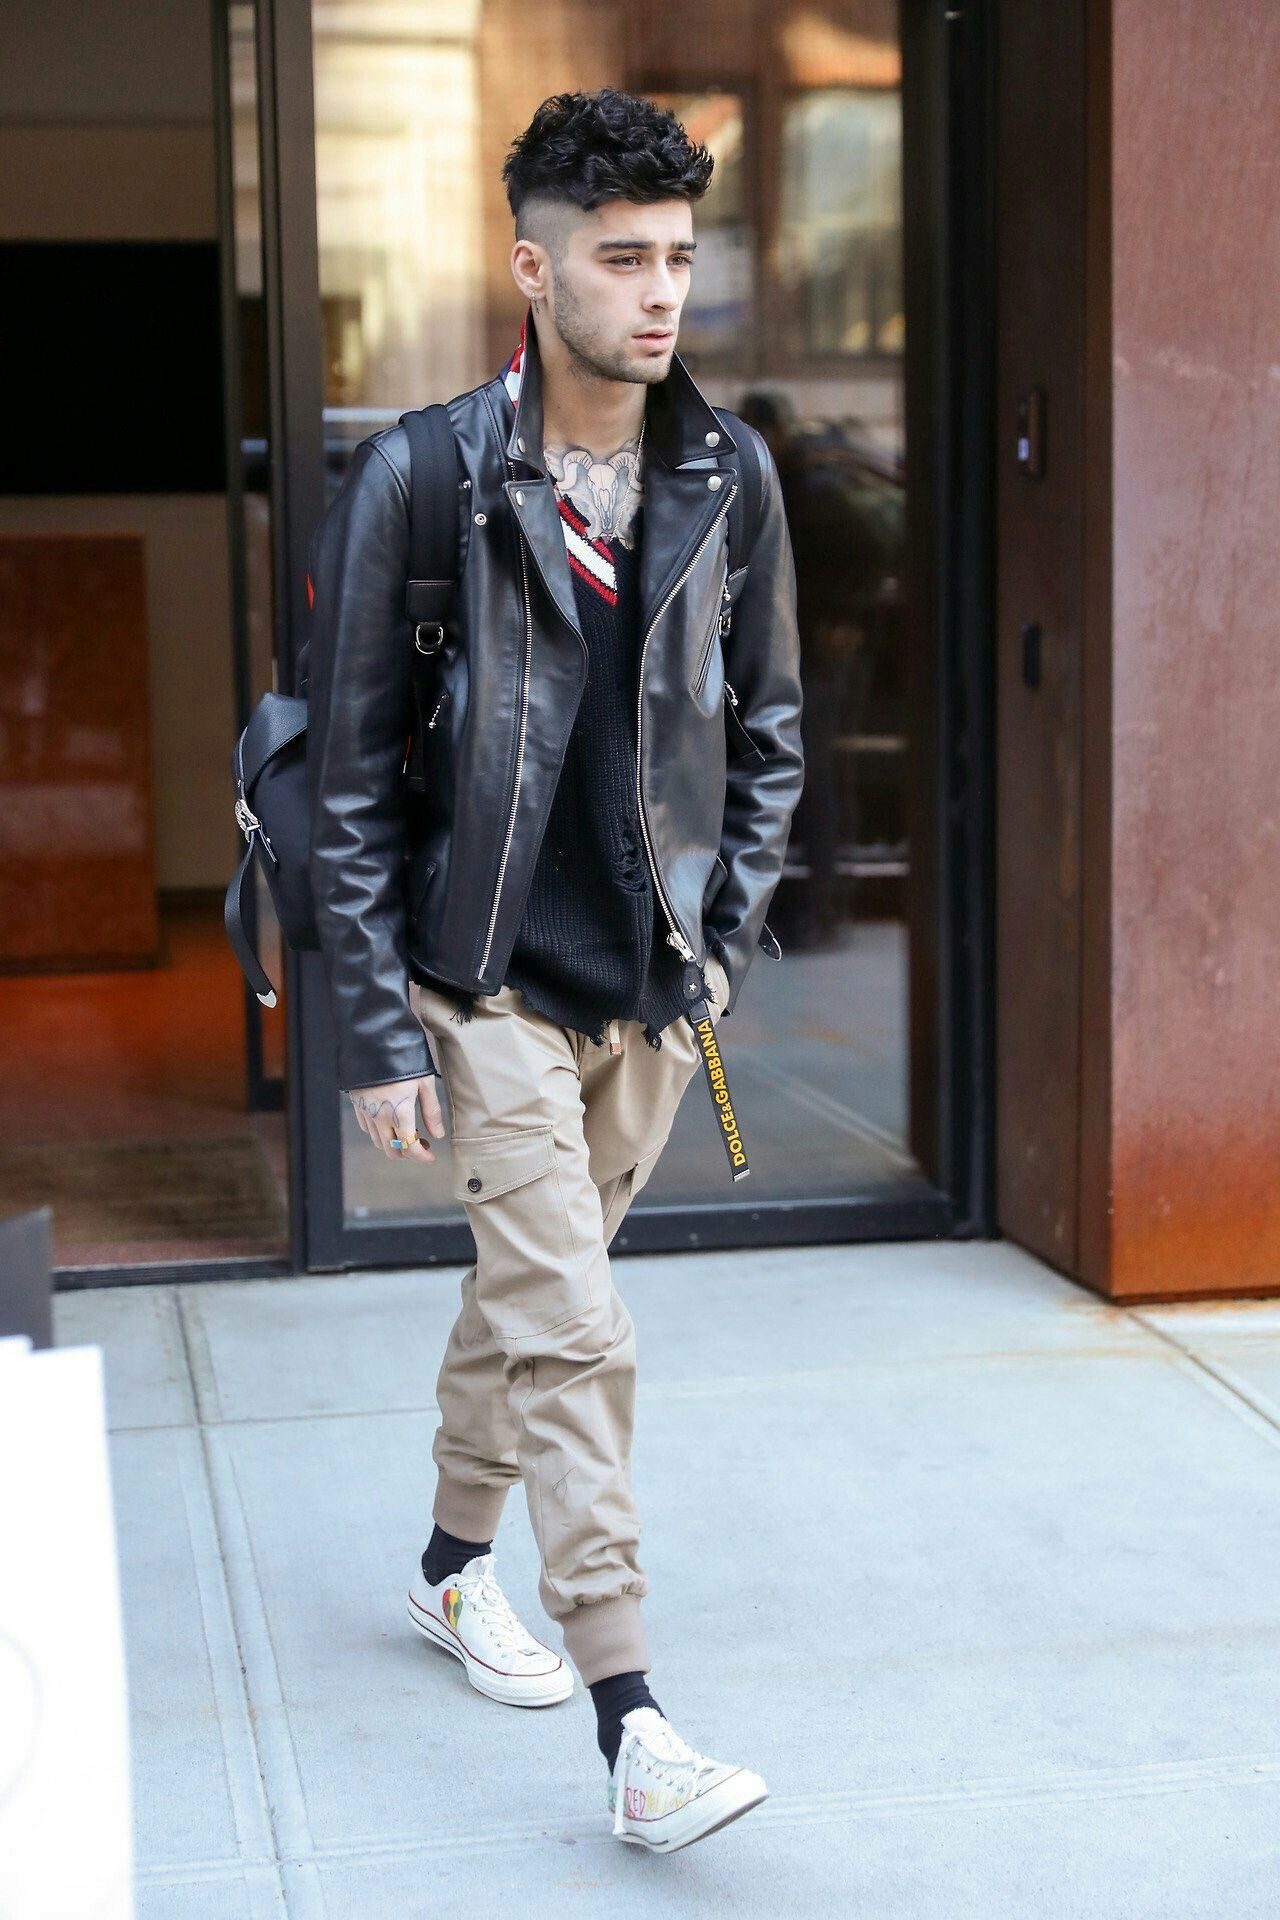 Zayn leaving his apartment on January 14, 2018 in New York City.